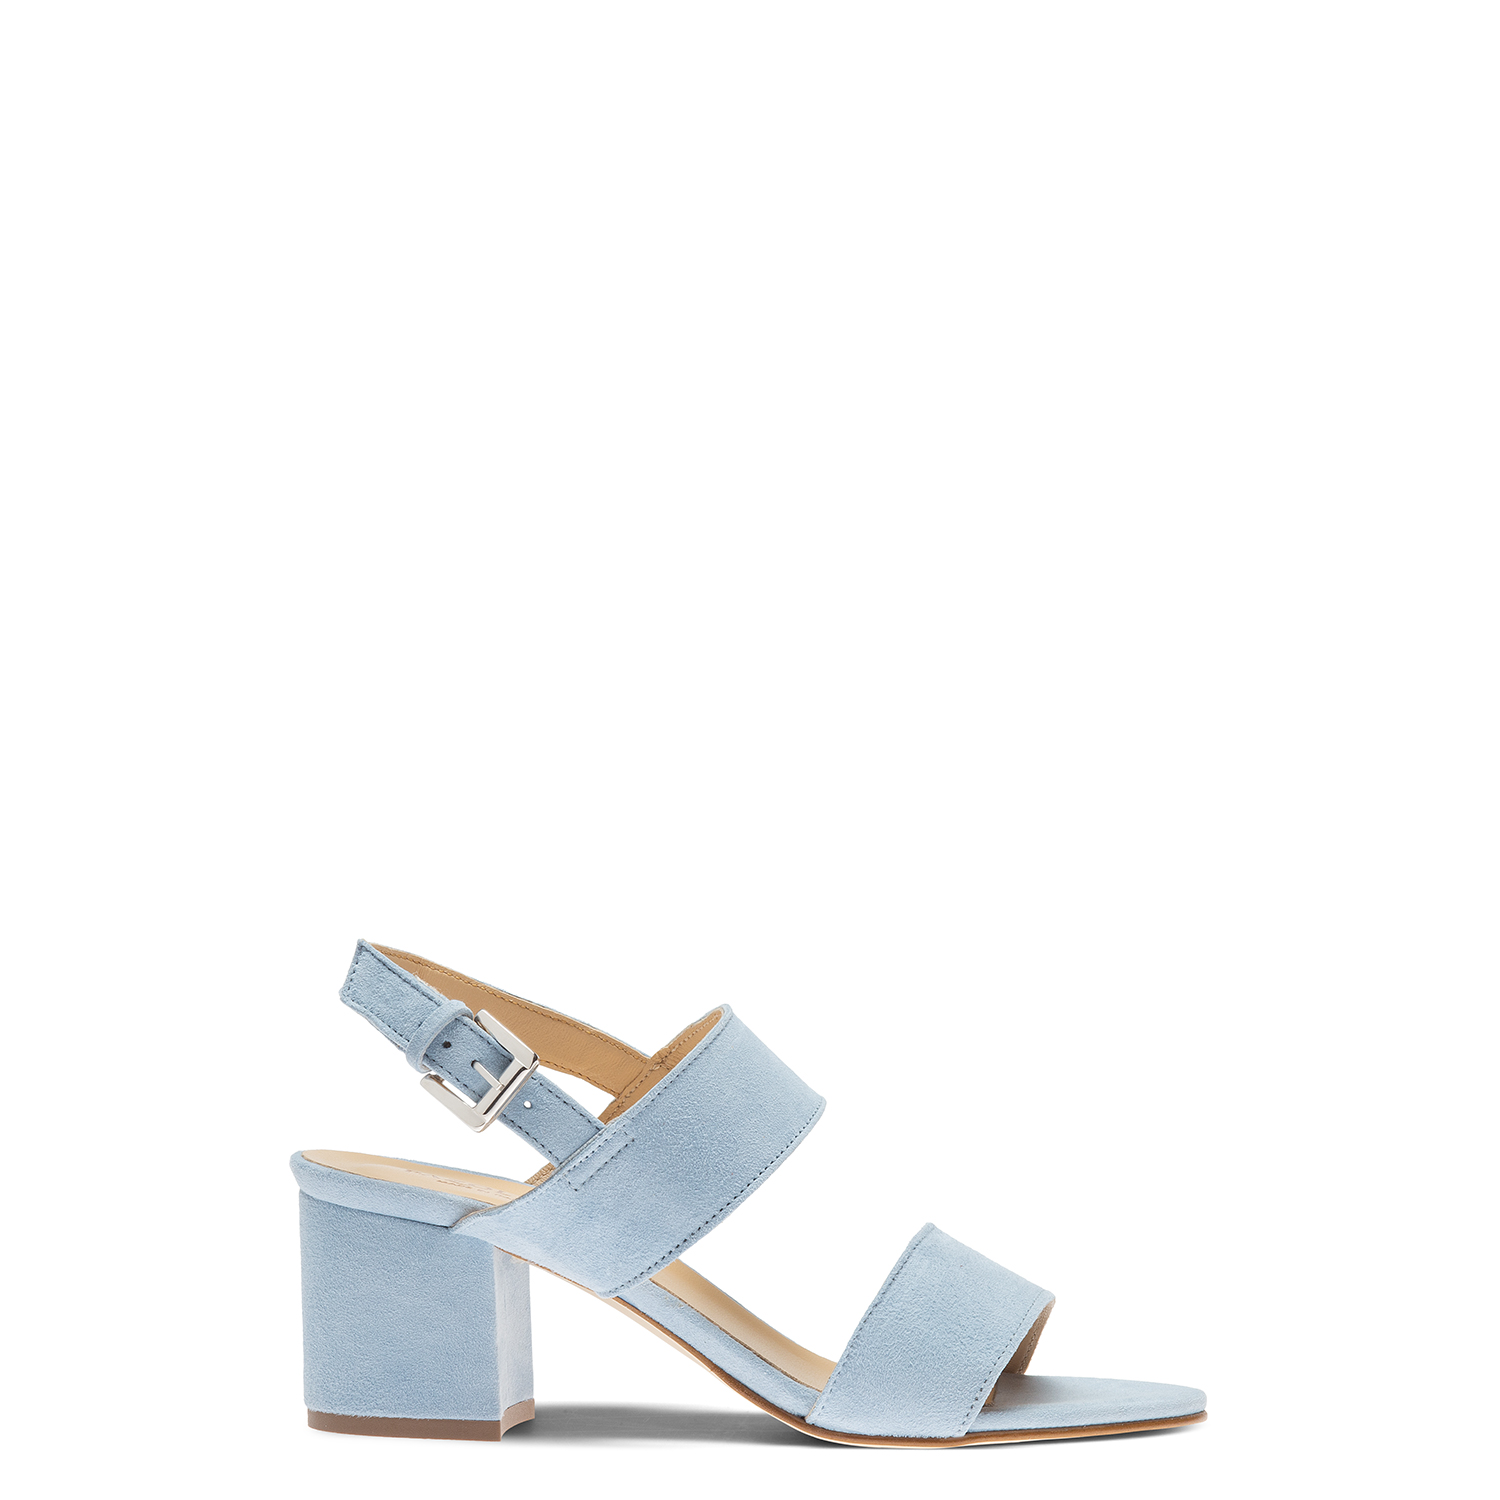 Women's sandals PAZOLINI SO-X1882-23